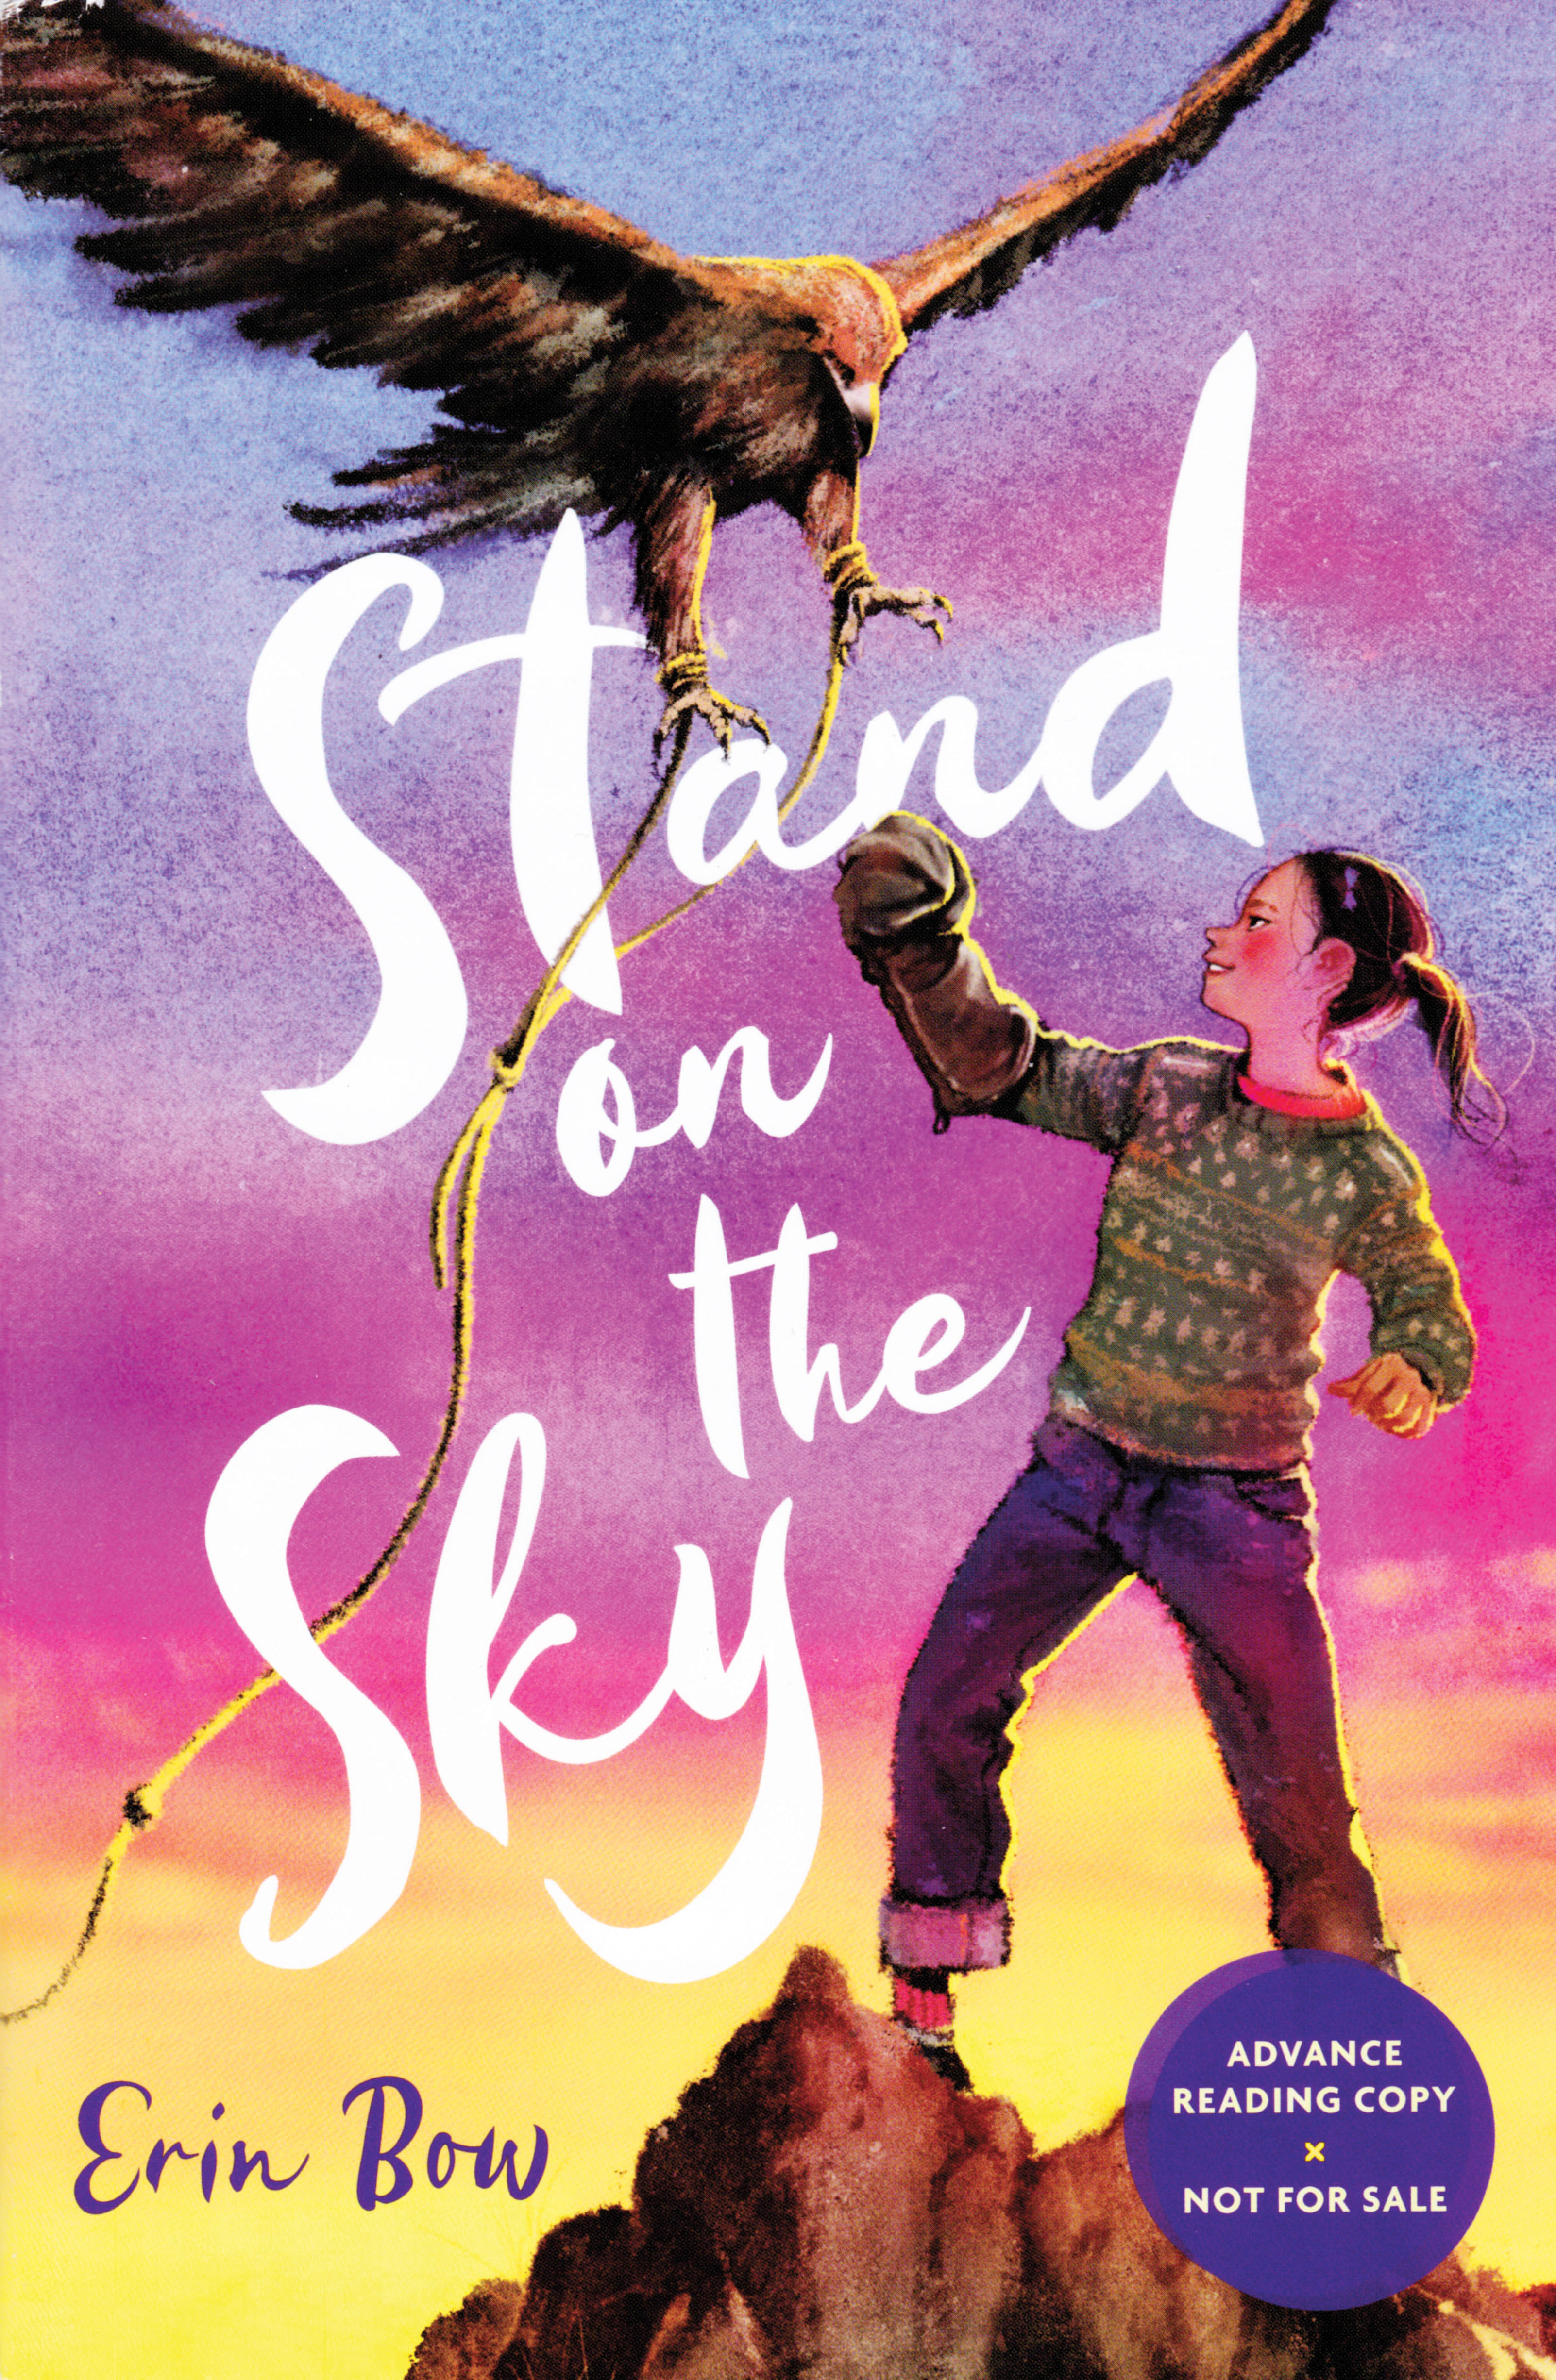 'Stand on the Sky' book cover.